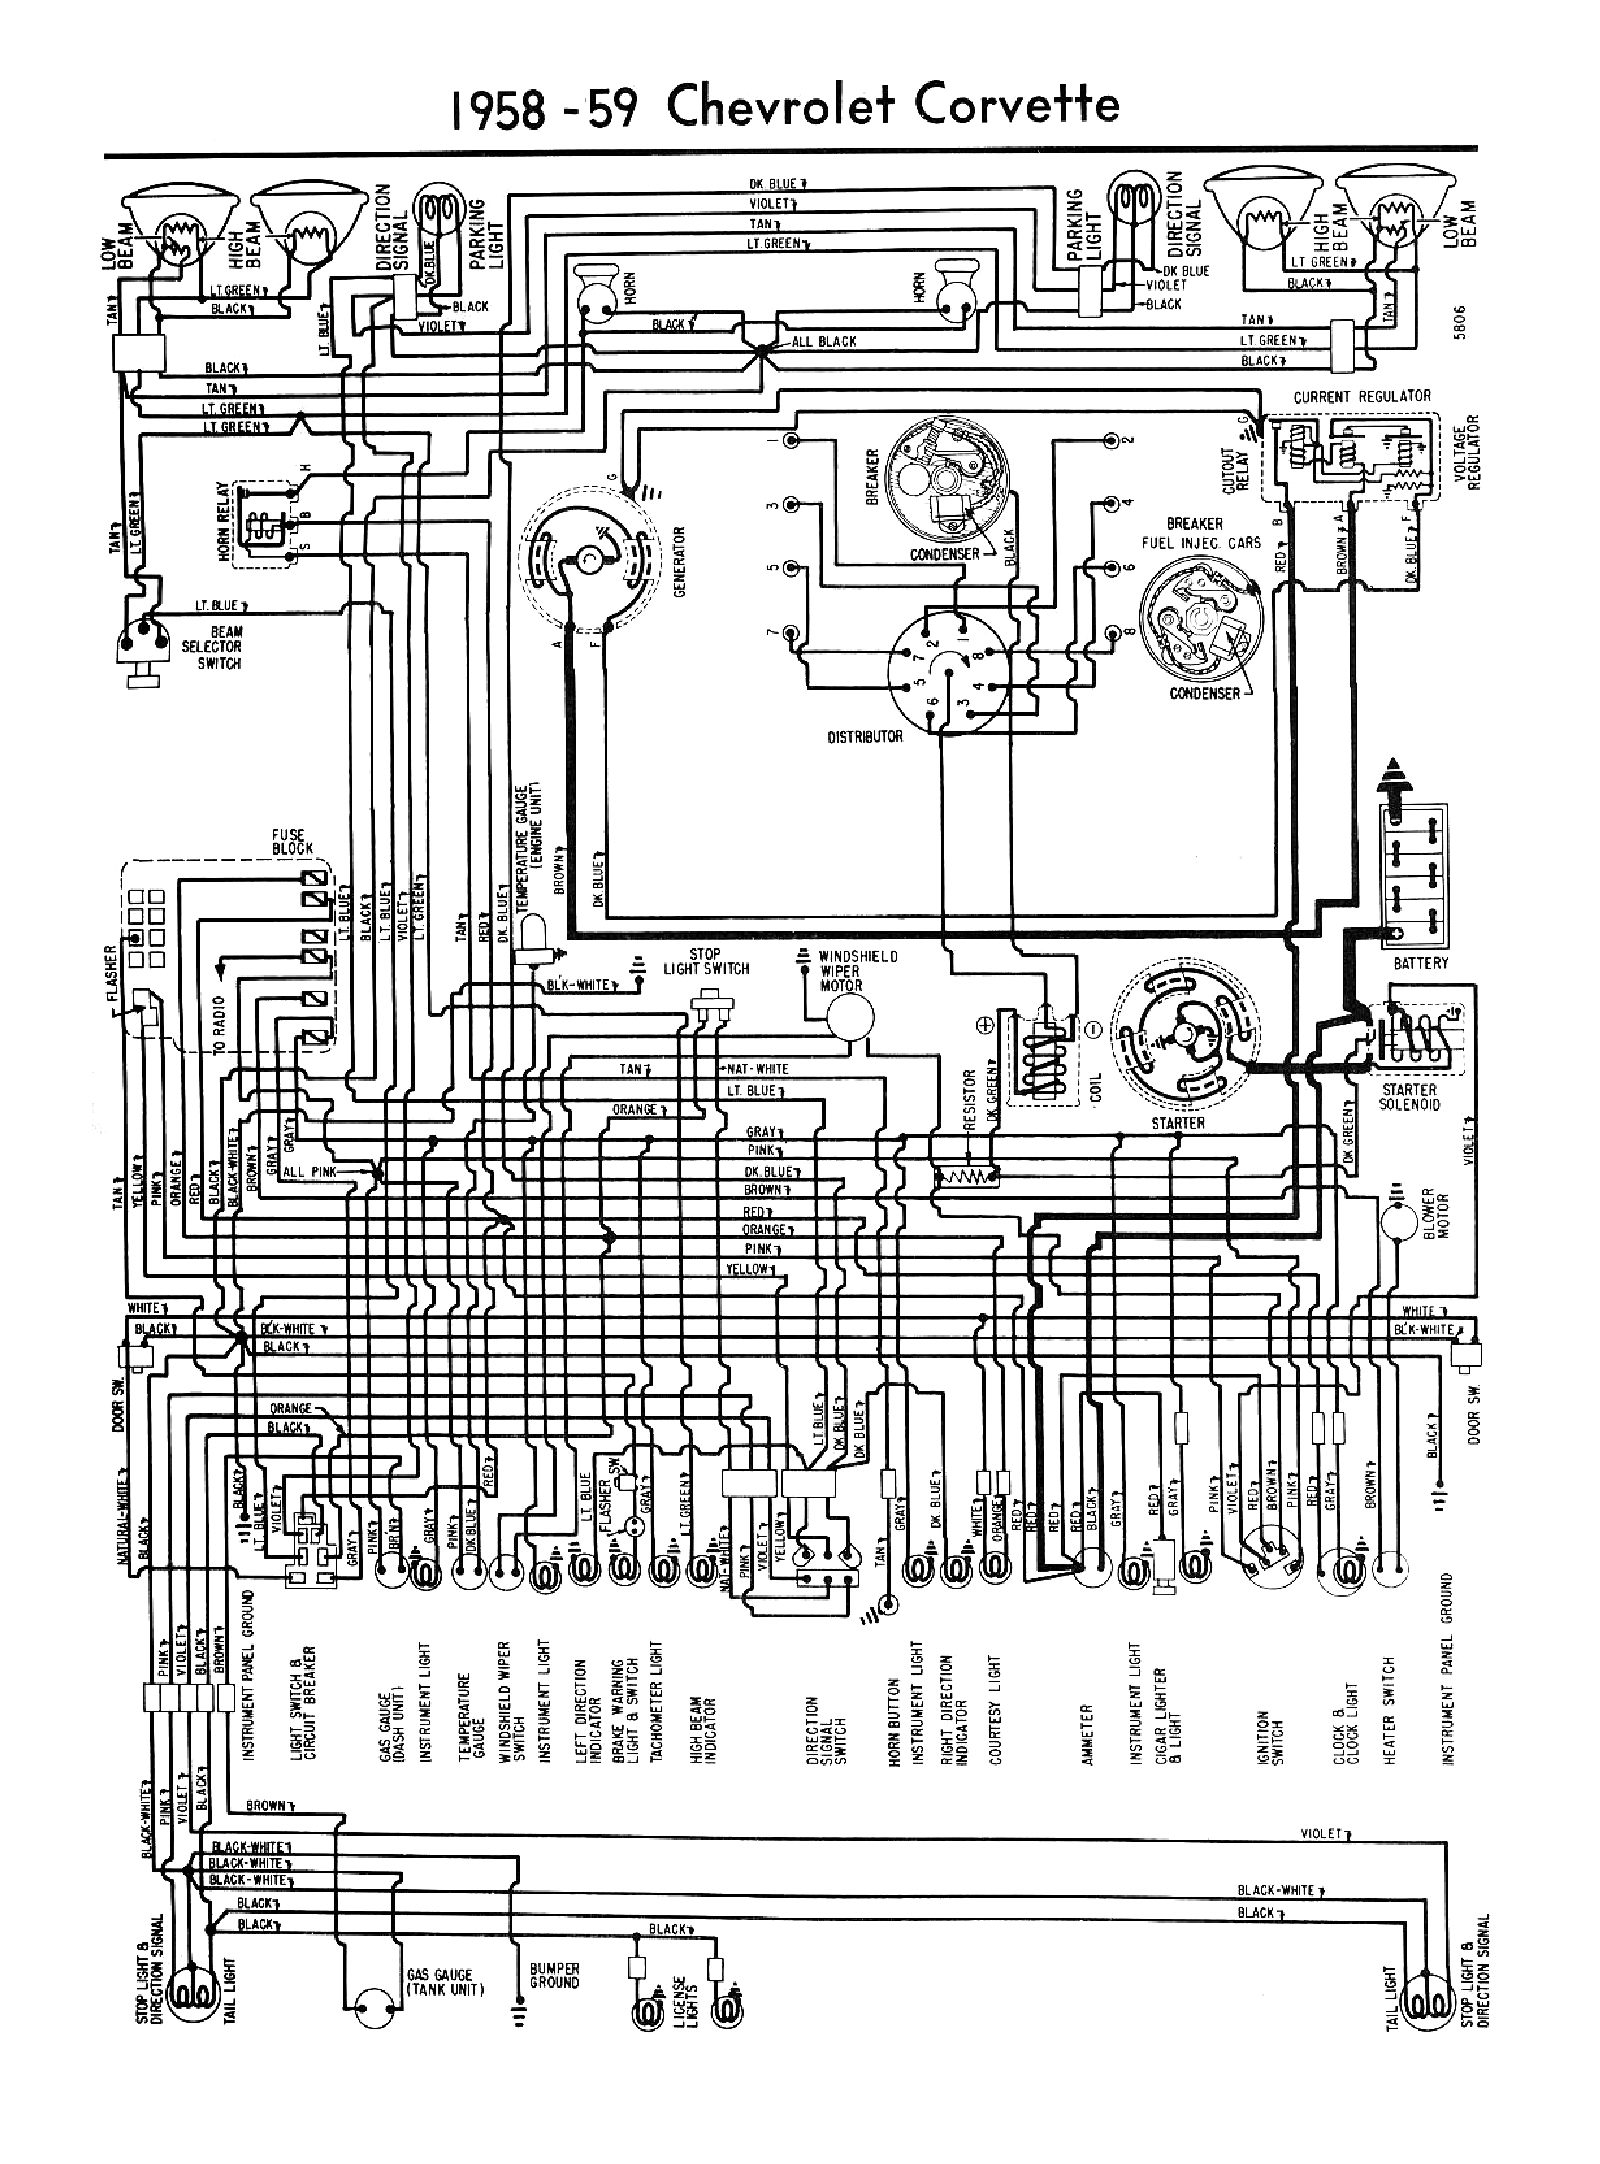 1955 corvette wiring diagram example electrical wiring diagram u2022 rh cranejapan co 1956 Chevy Wiring Harness Diagram 1957 Chevy Convertible Wiring Harness